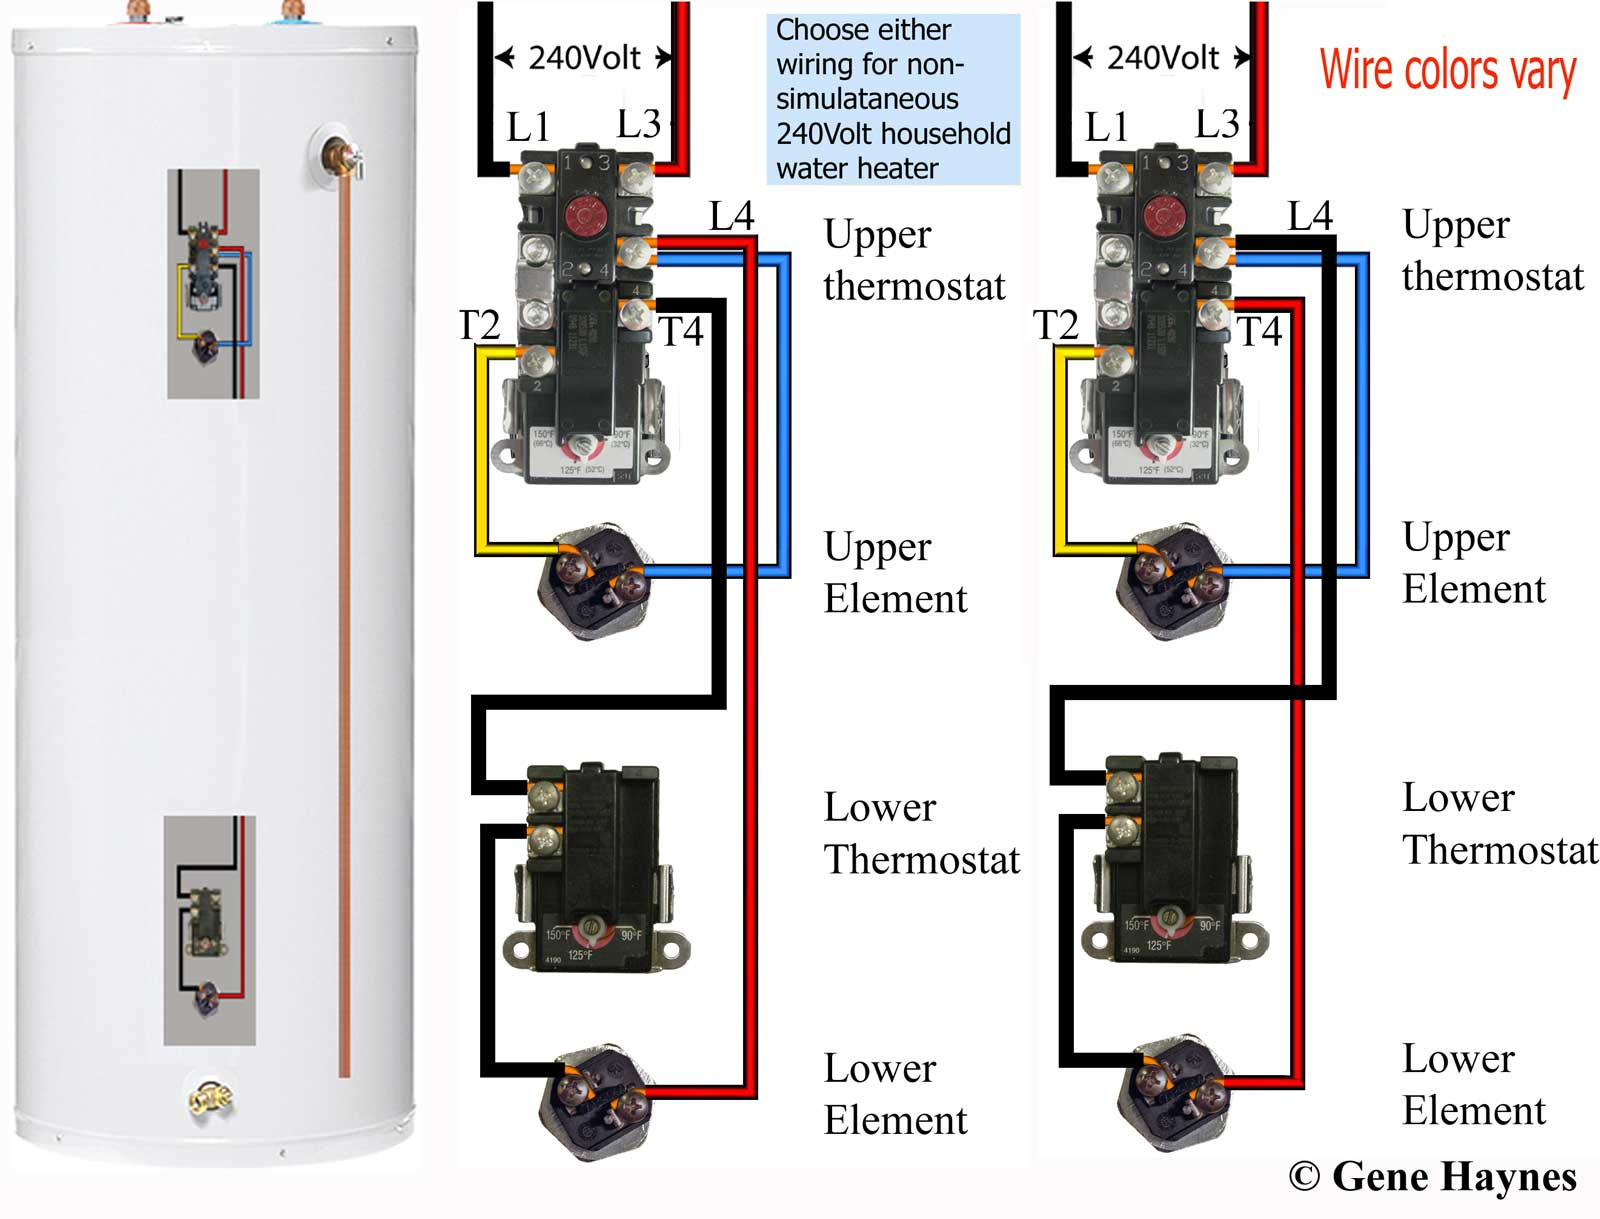 How To Wire Water Heater Thermostats - Water Heater Wiring Diagram